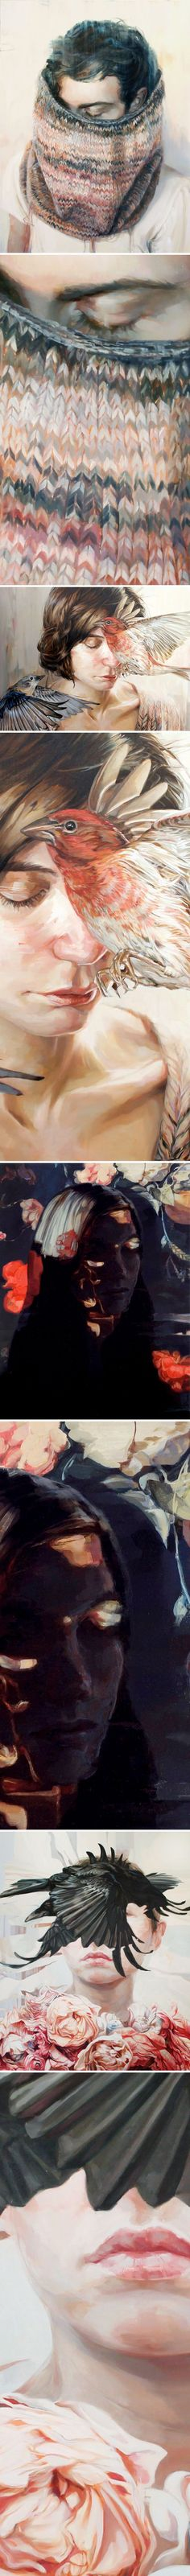 meghan howland | The Jealous Curator | Bloglovin